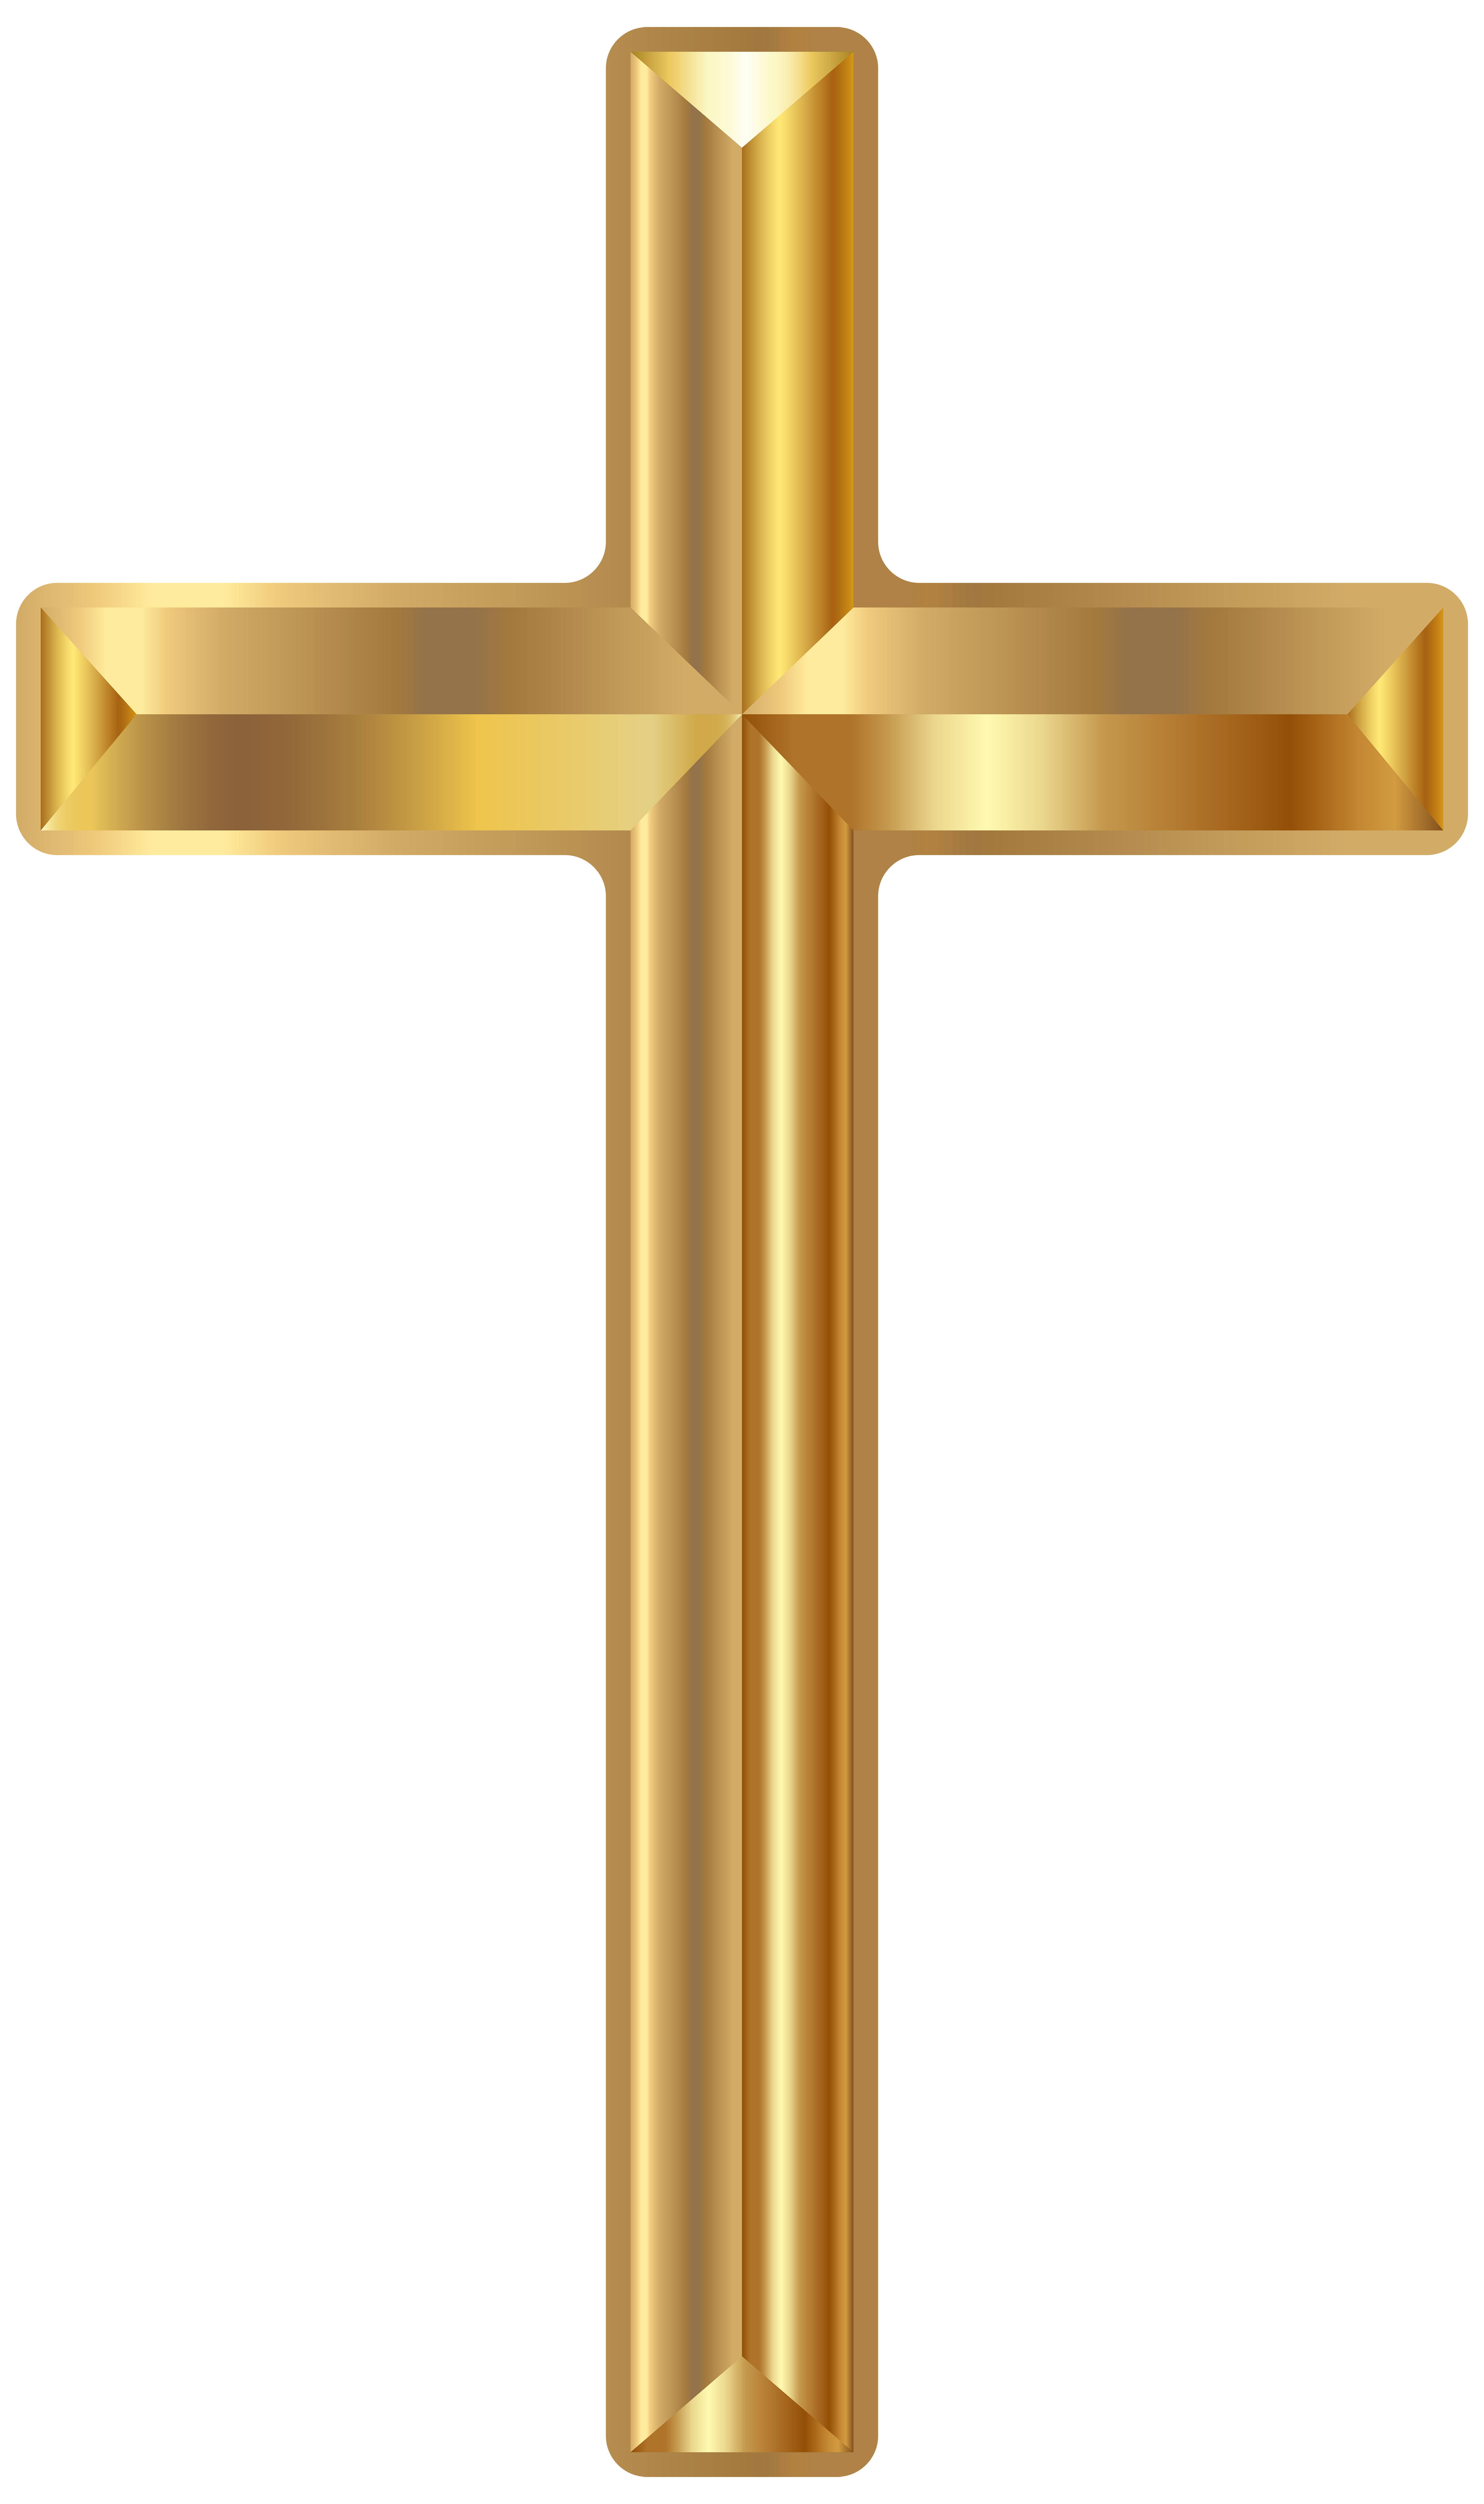 Clipart cross spring. Gold png transparent clip